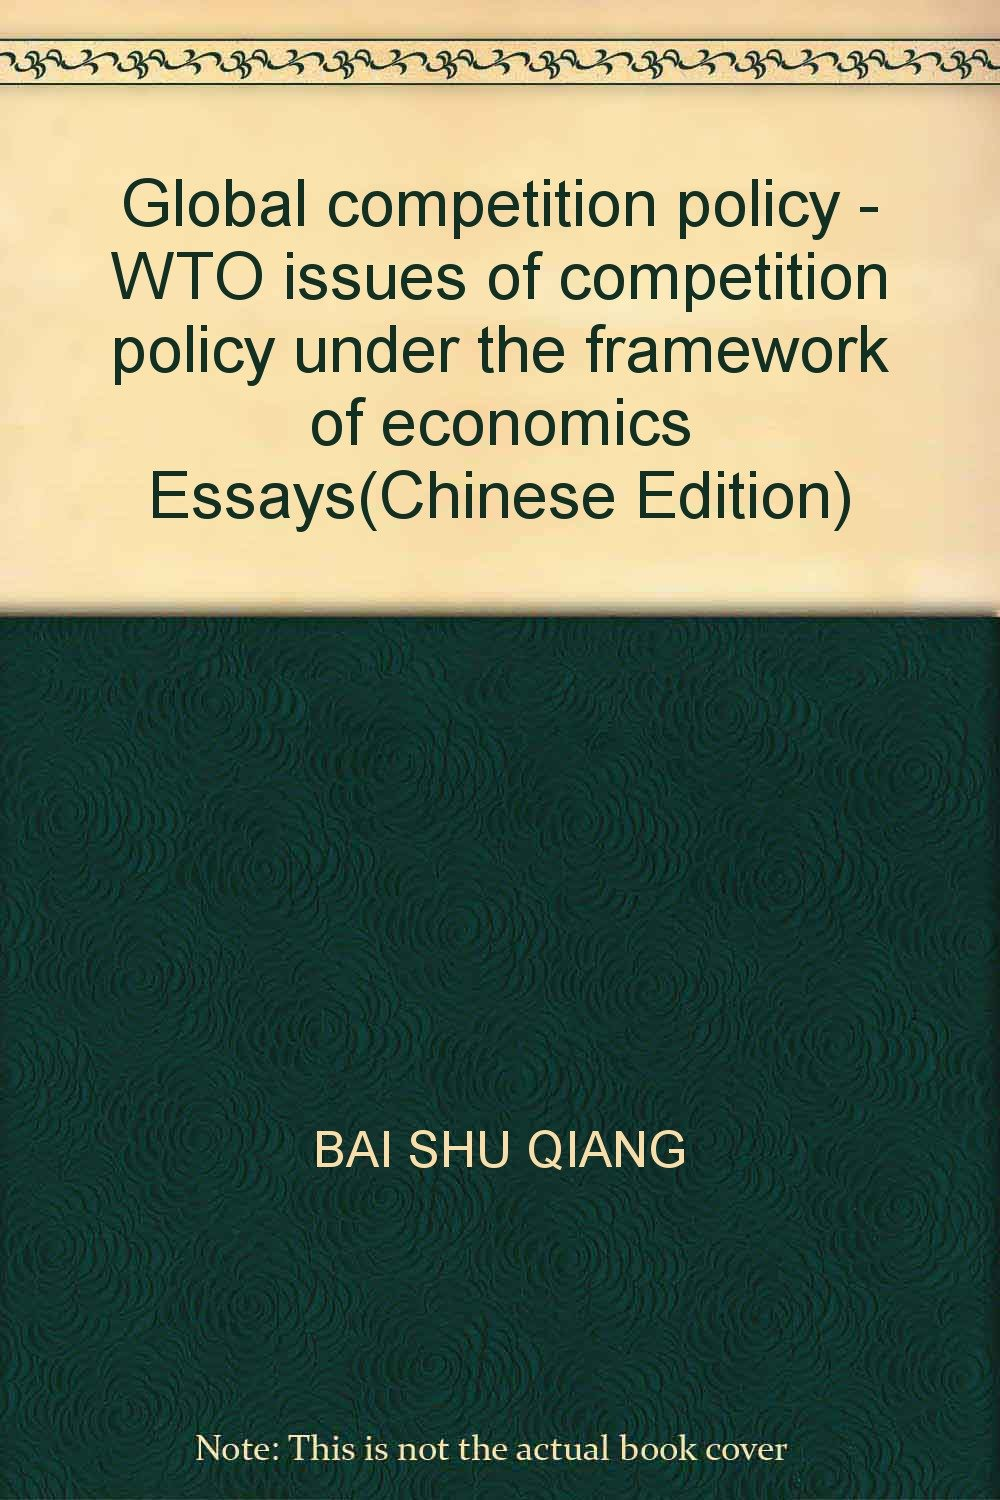 Download Global competition policy - WTO issues of competition policy under the framework of economics Essays(Chinese Edition) pdf epub